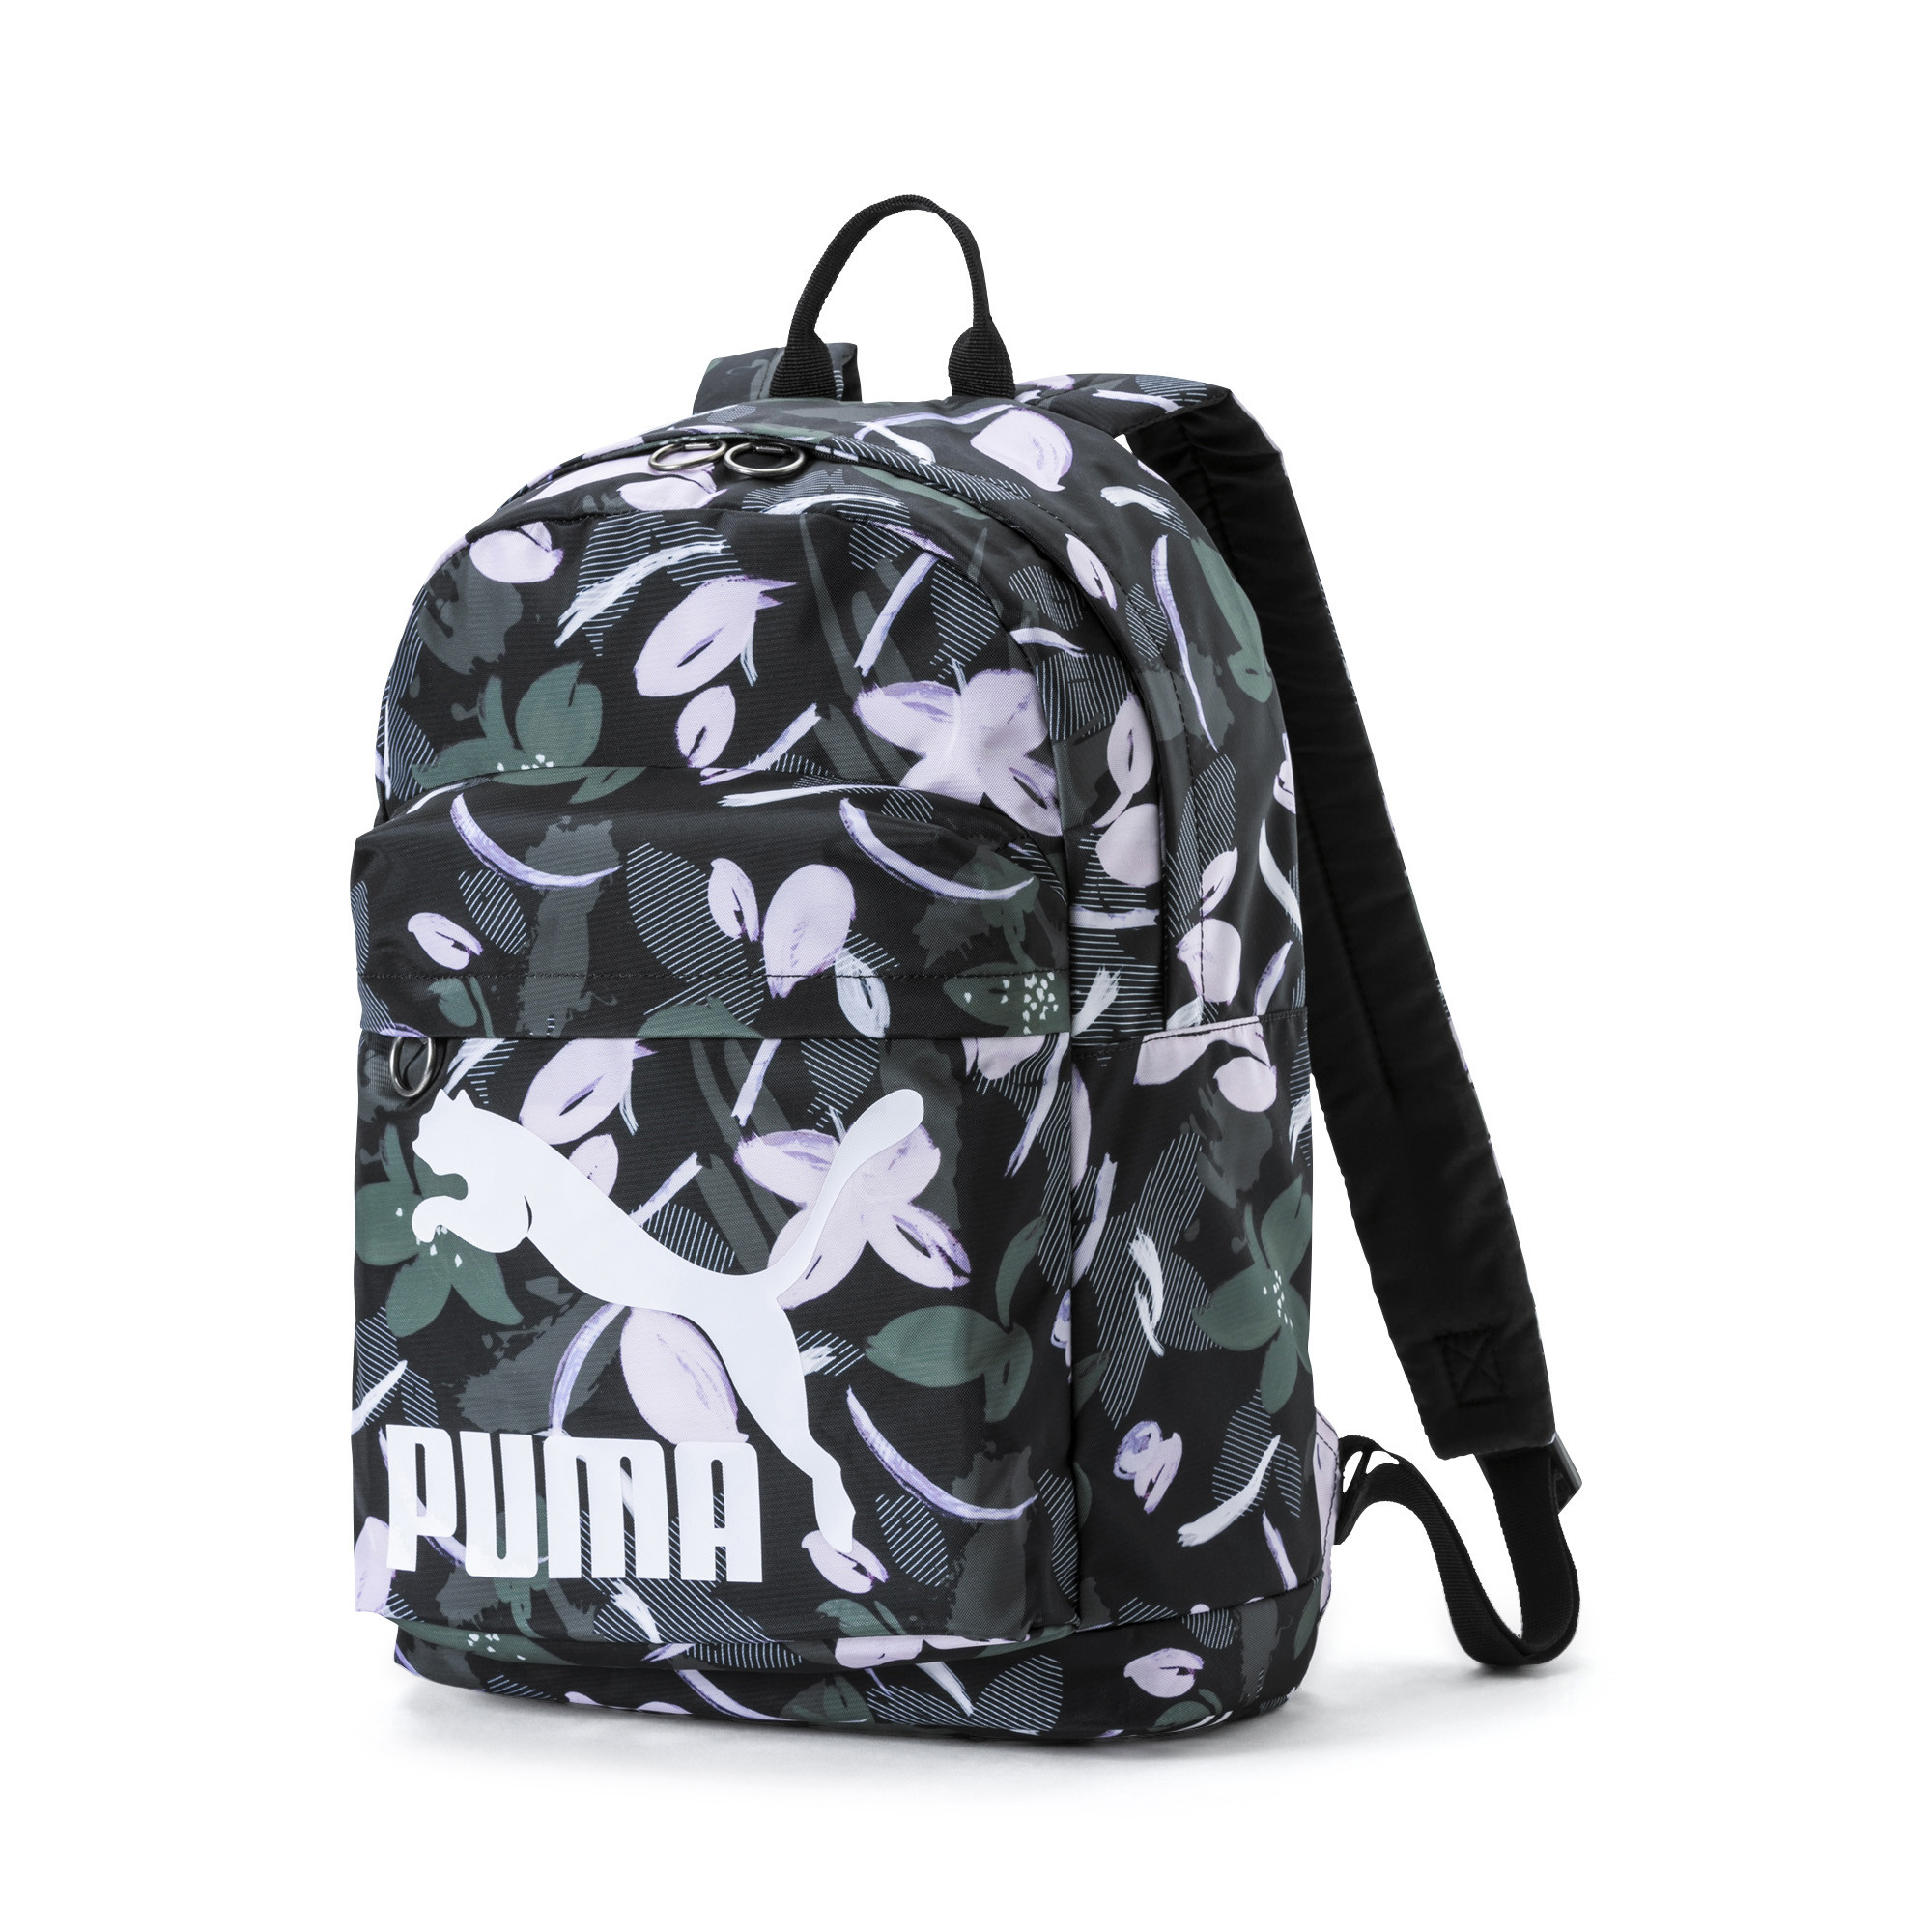 Originals Backpack Puma Black-floral pri